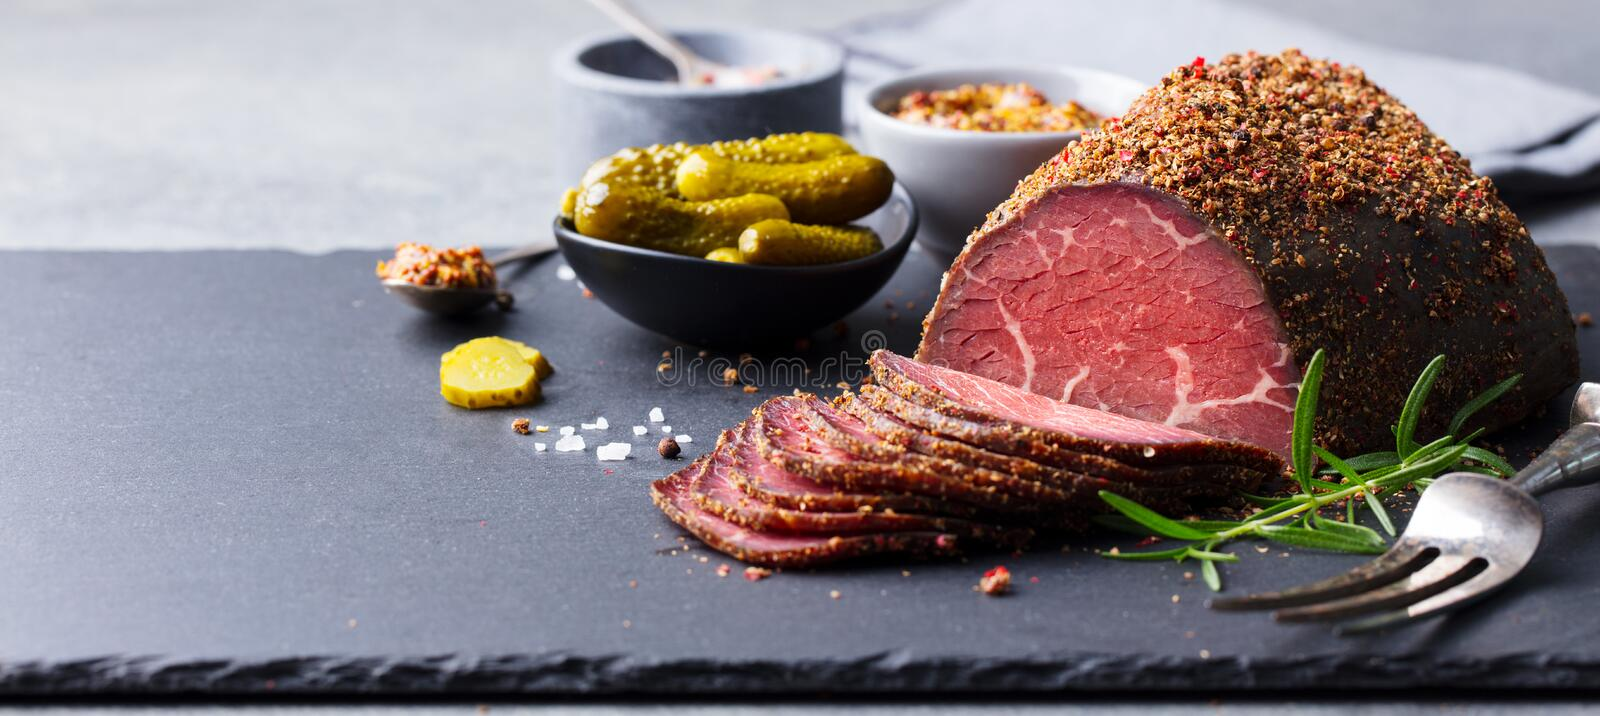 Roasted beef, pastrami on slate cutting board. Copy space stock images